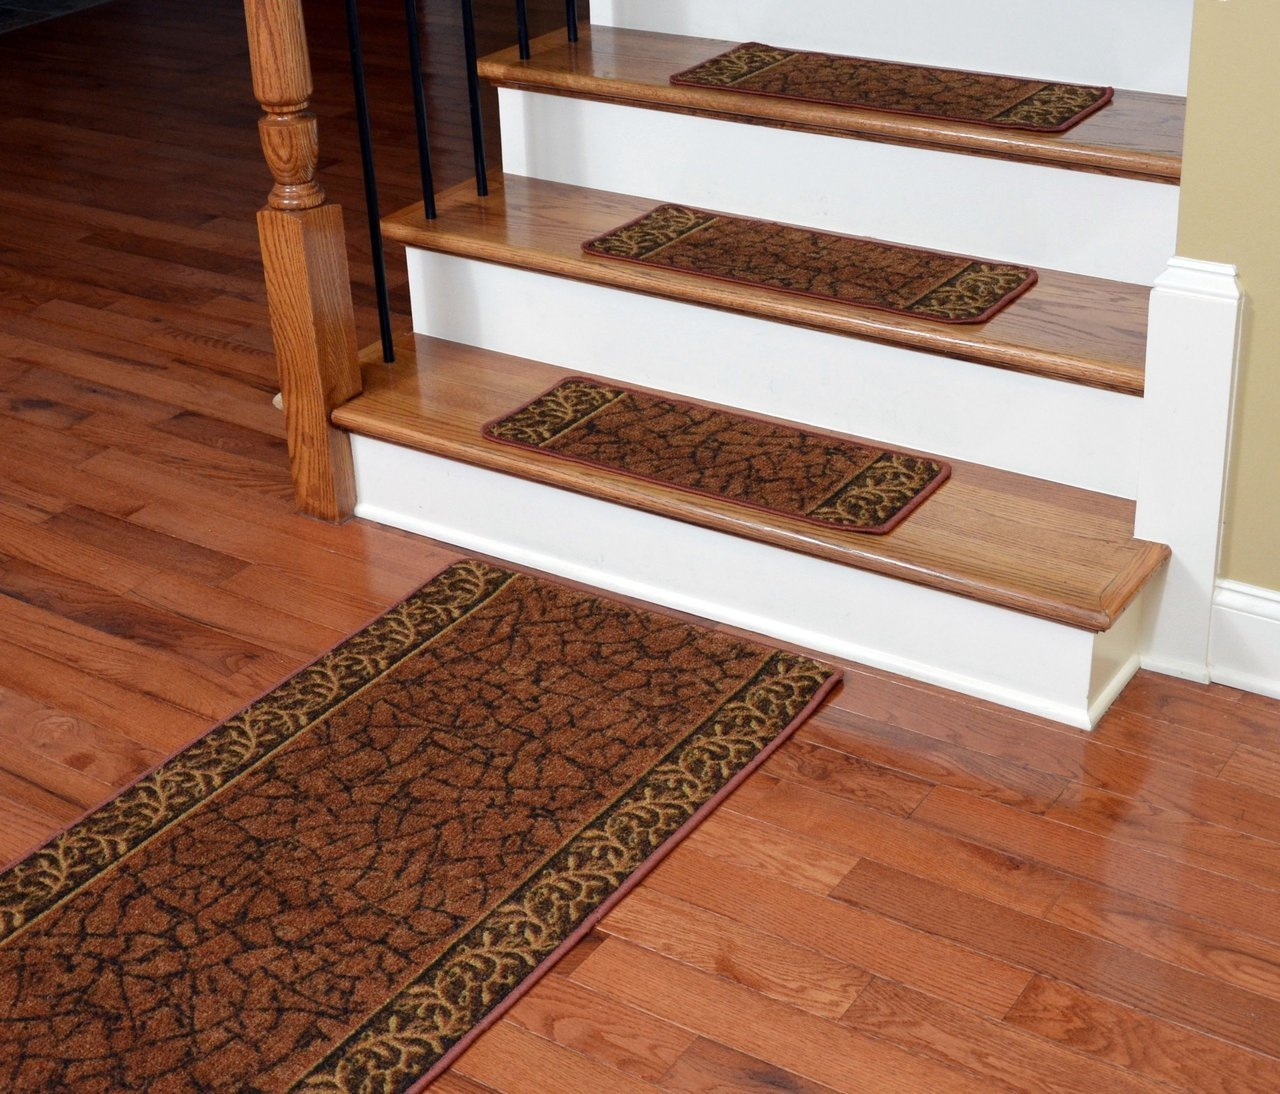 Dean Washable Non Skid Carpet Stair Treads Garden Path Terra With Stair Treads And Matching Rugs (View 4 of 15)